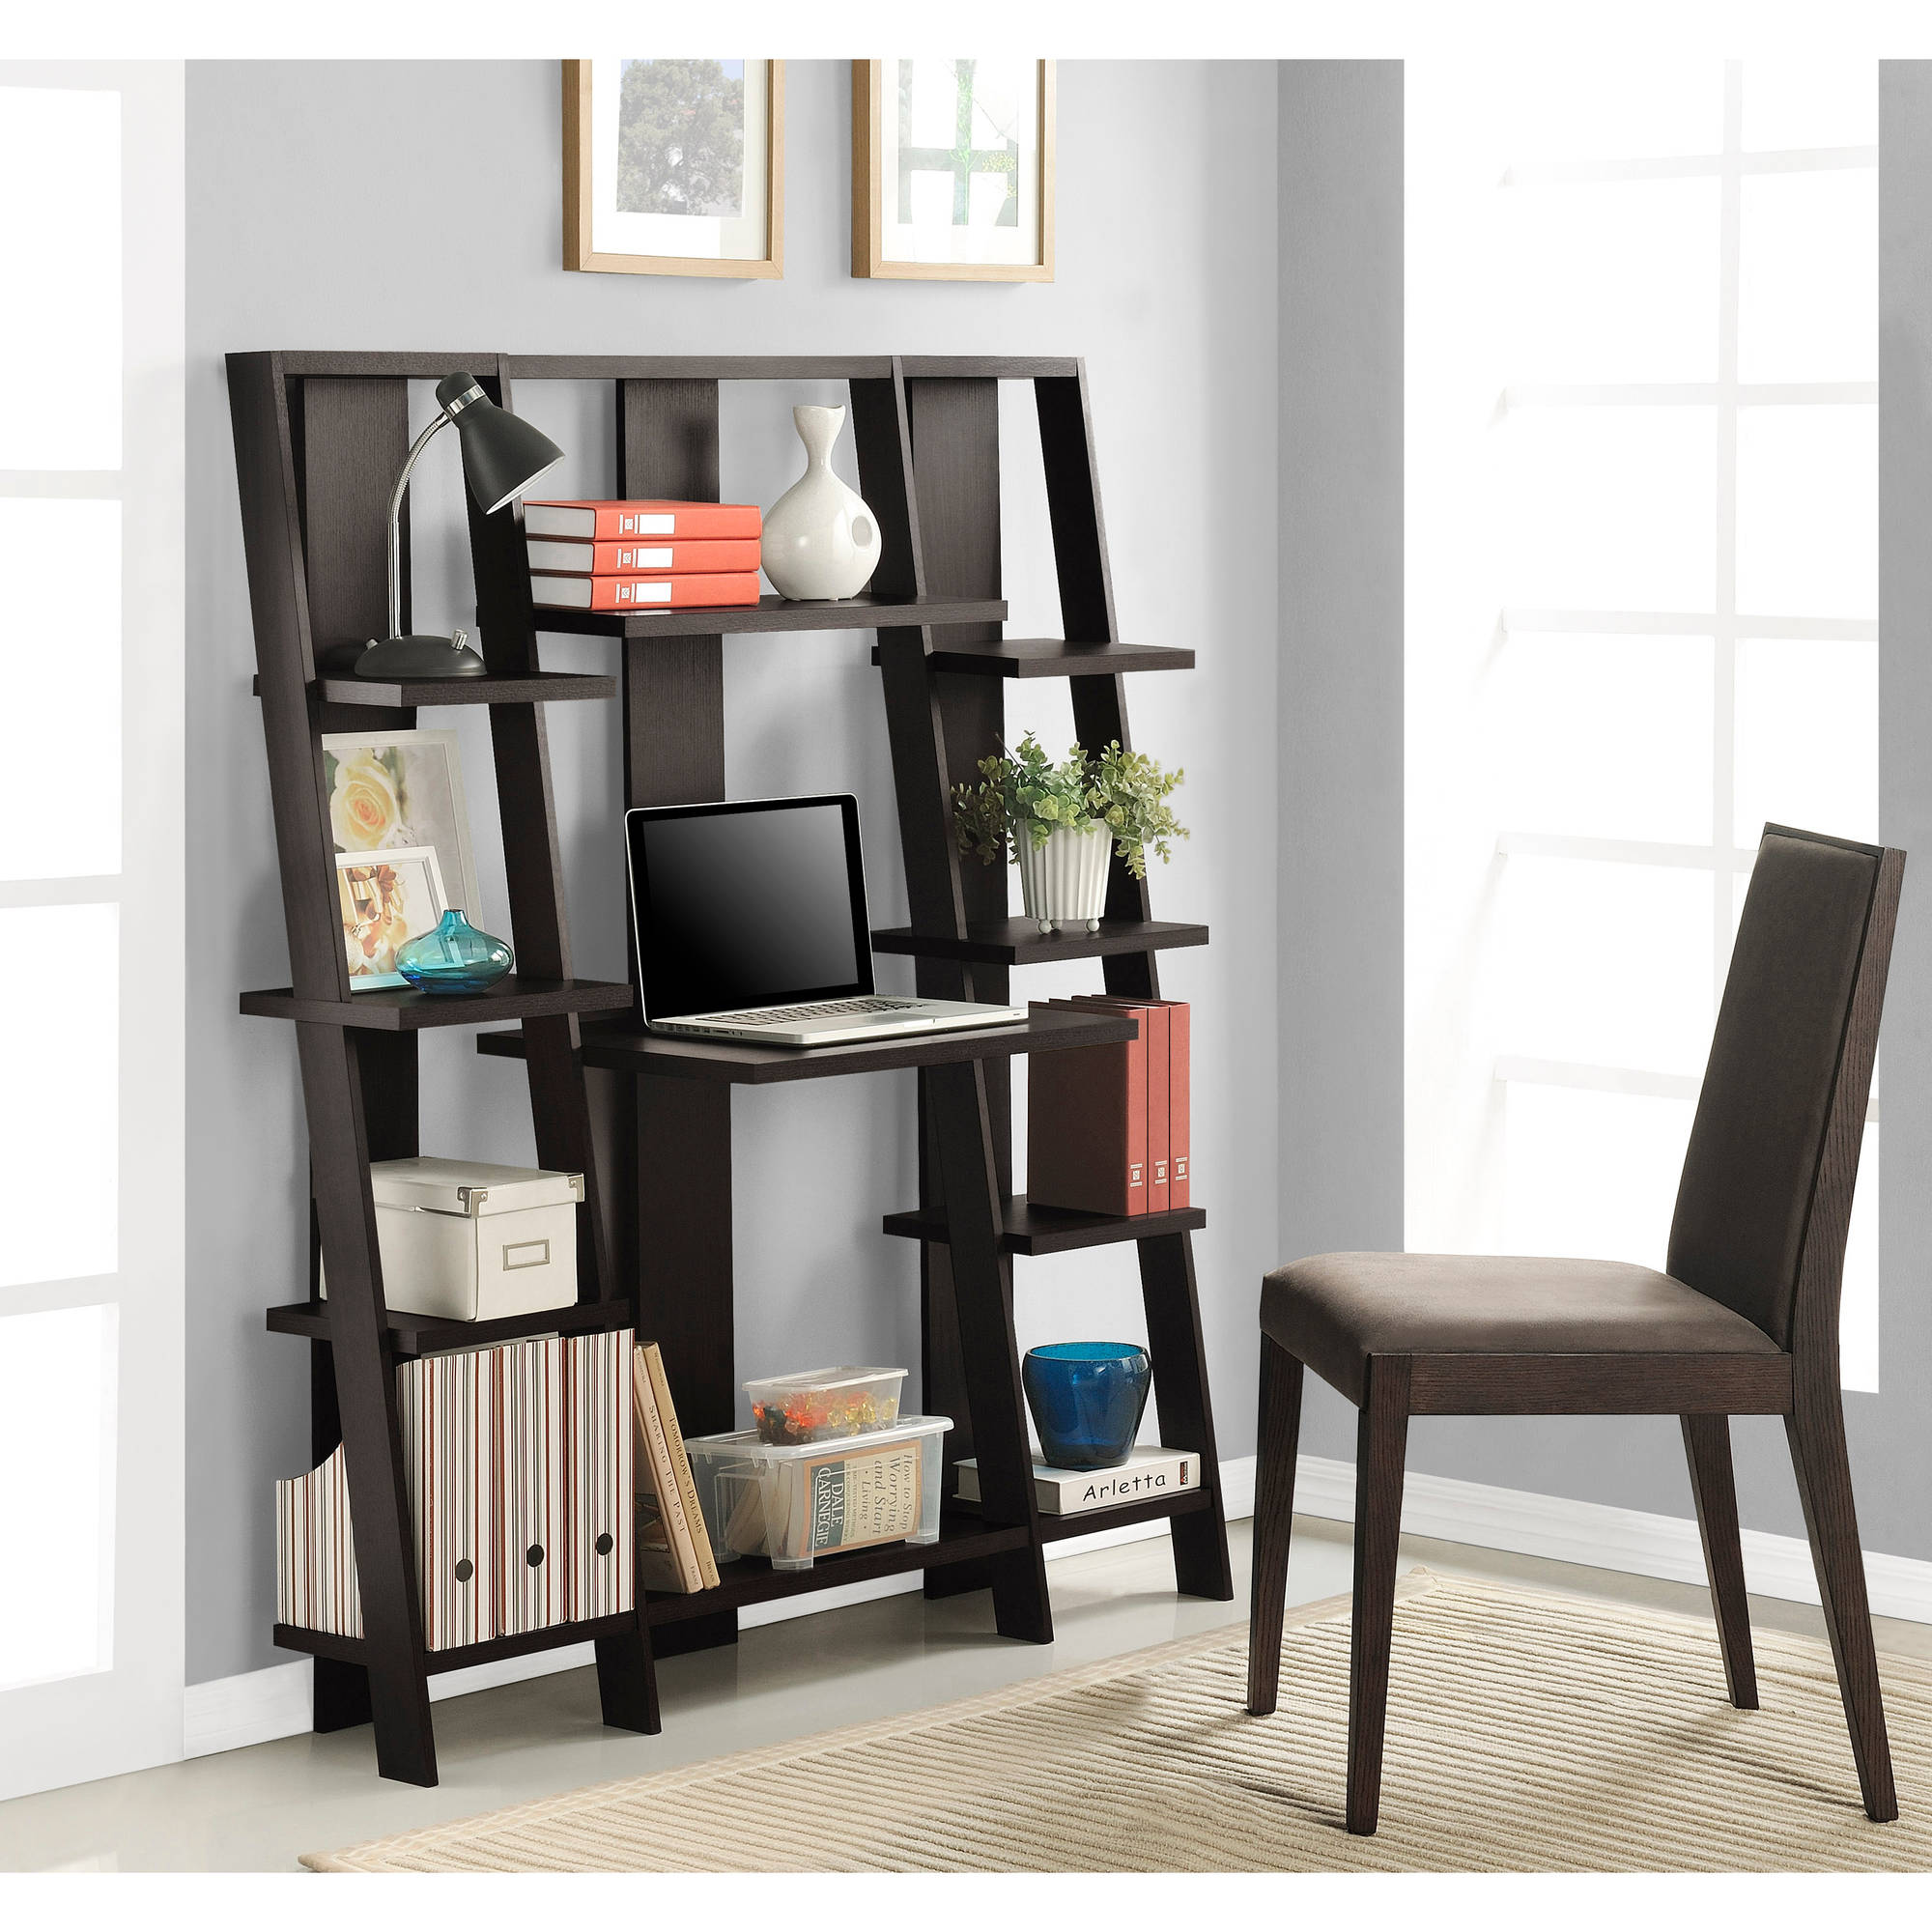 shelf wood best itm home bookcase choice leaning table furniture bookcases desk with office computer products